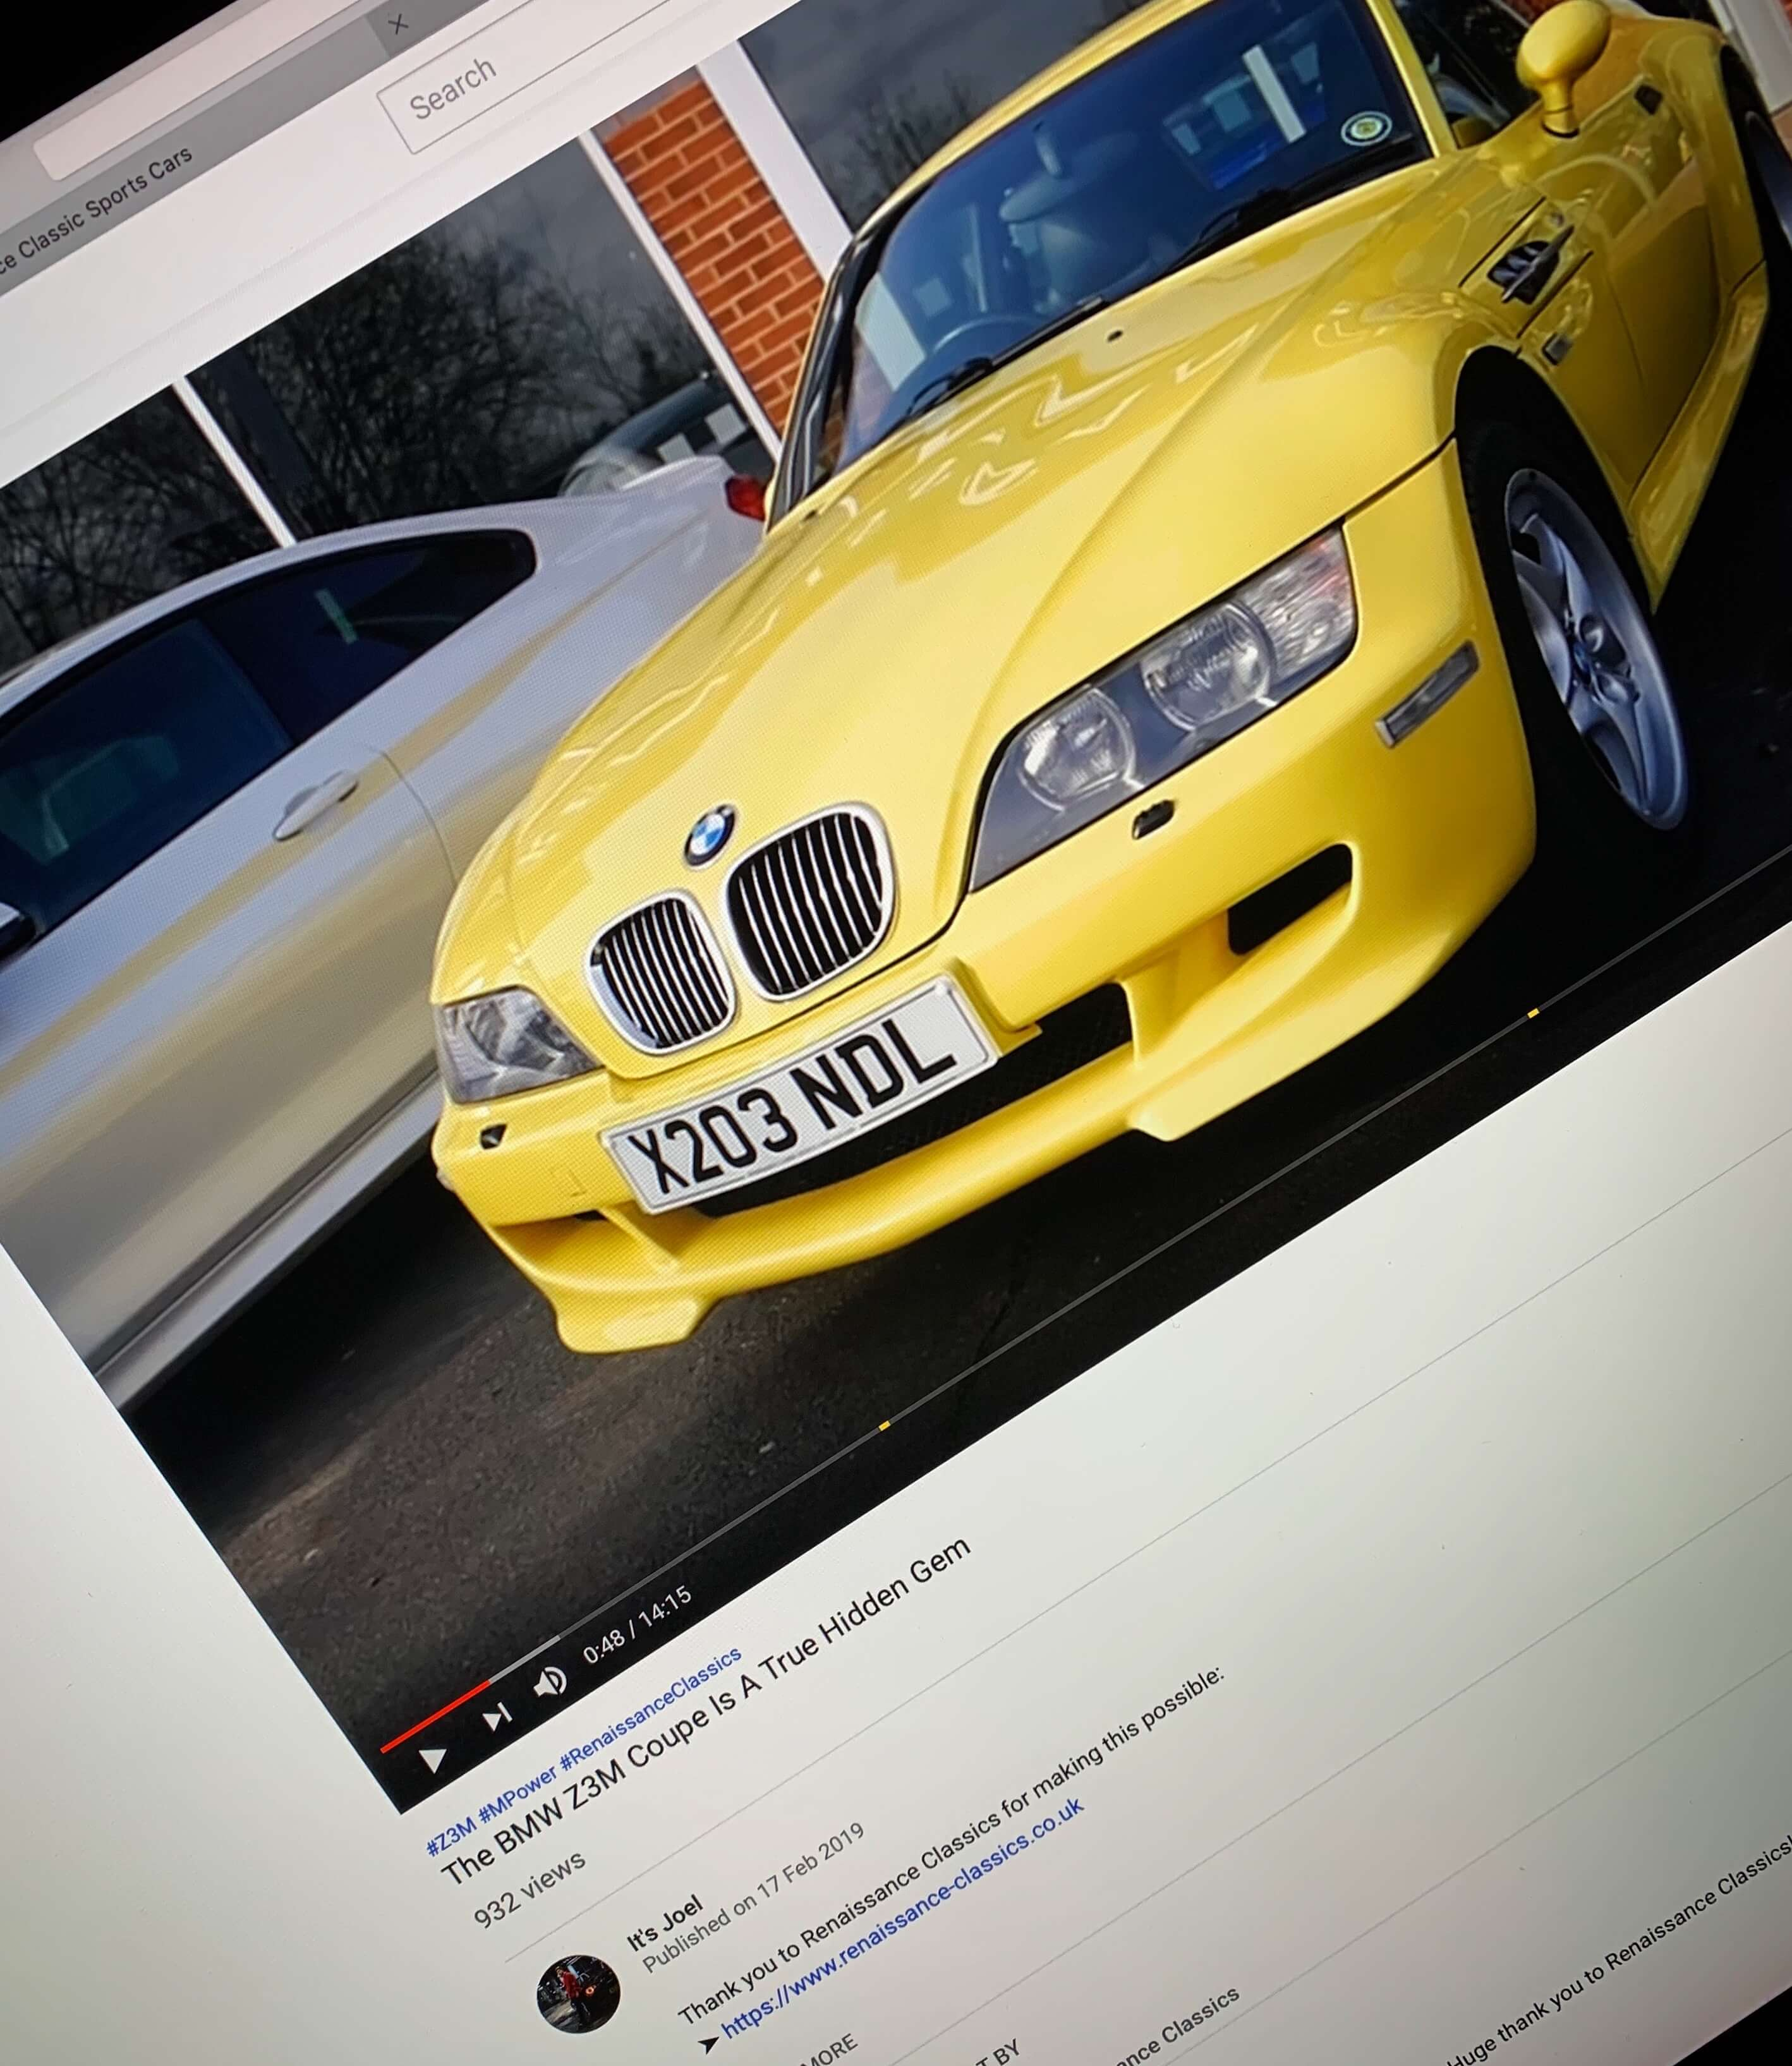 THE BMW Z3M COUPE IS A TRUE HIDDEN GEM